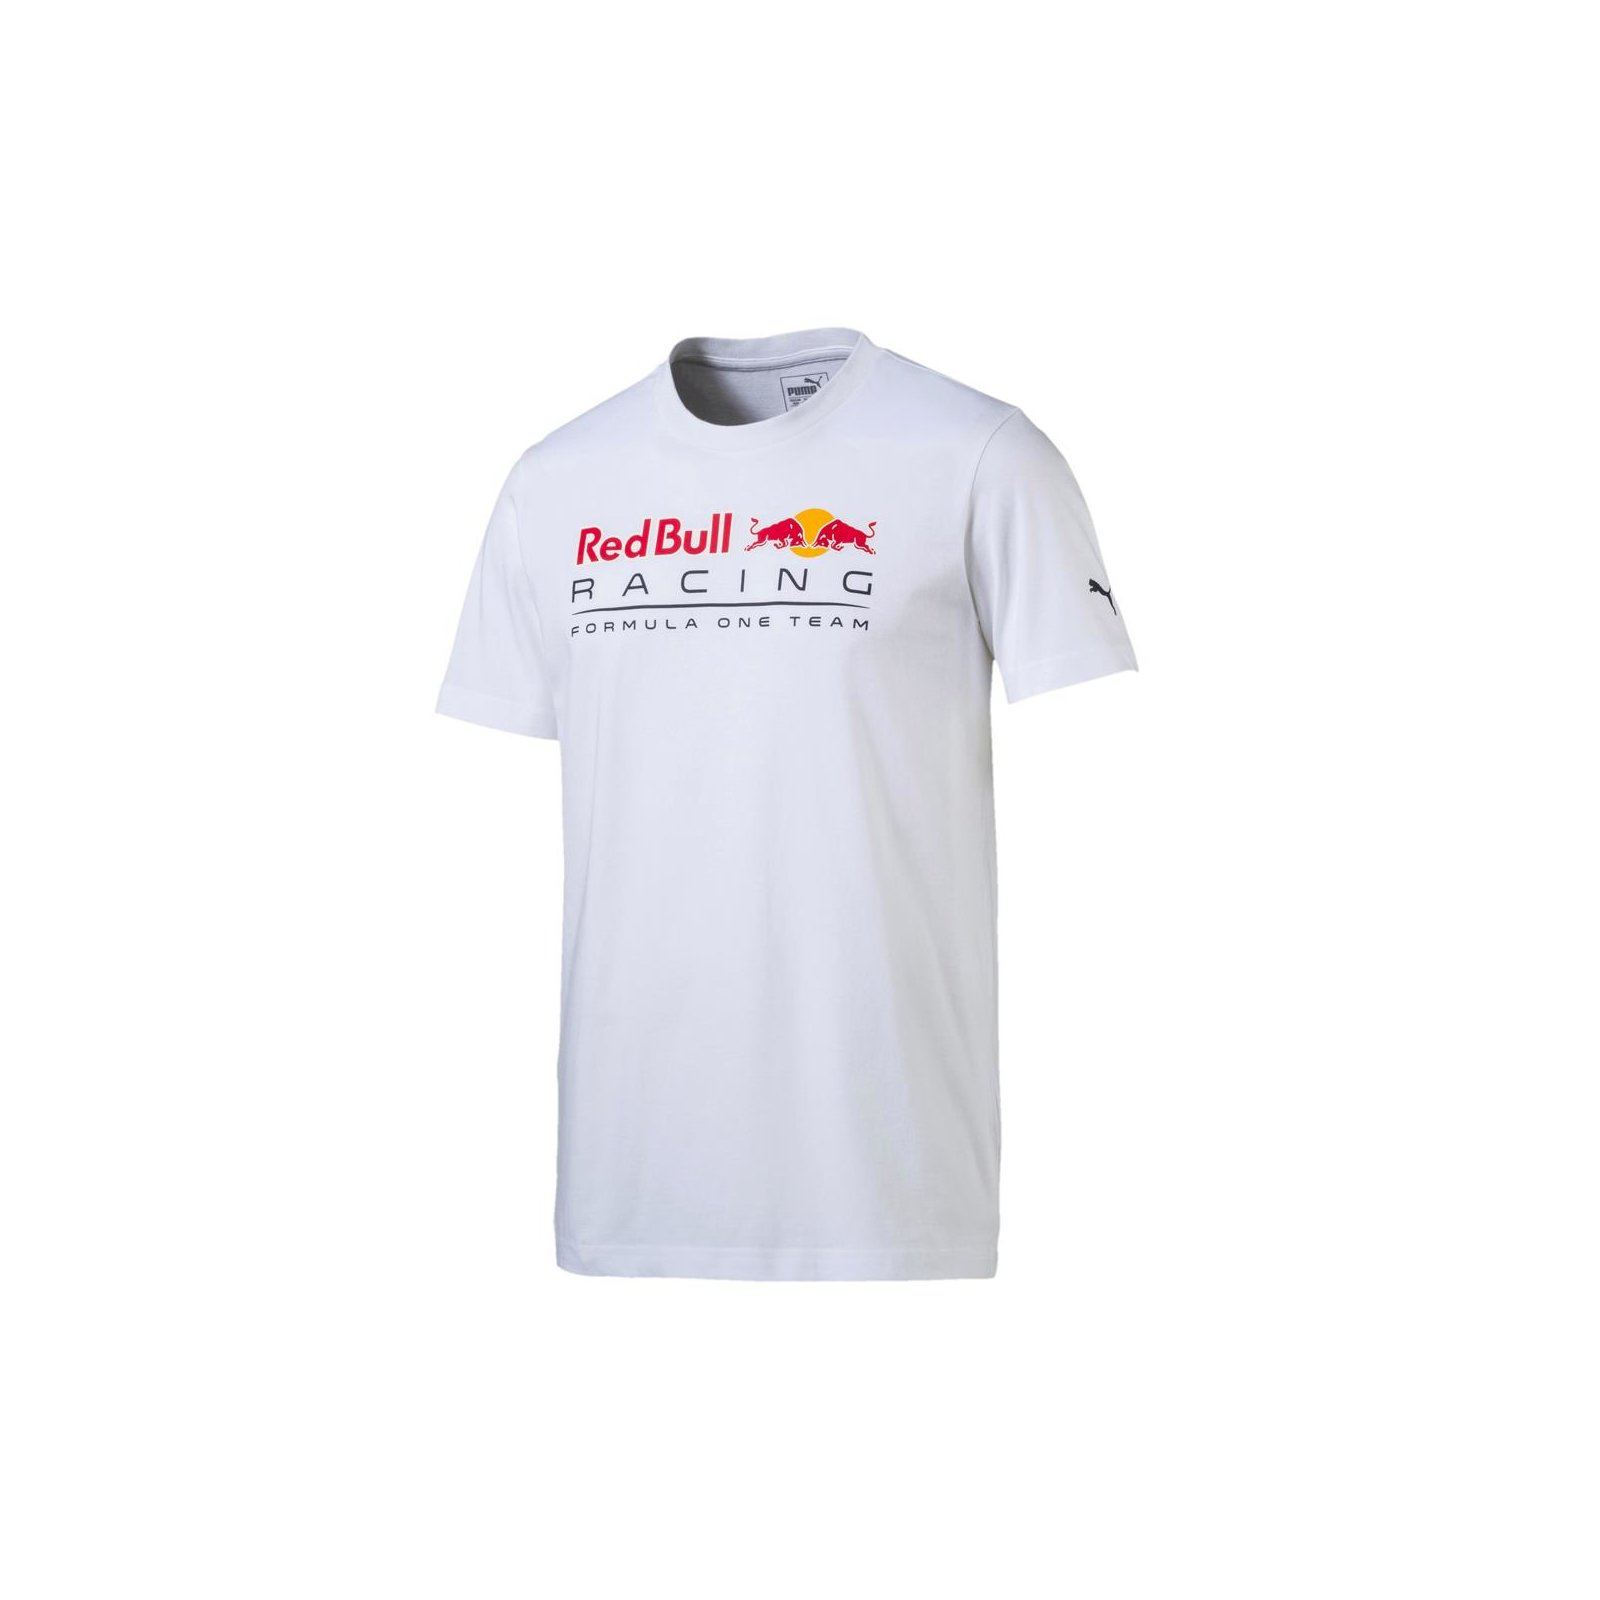 PUMA Red Bull Racing Logo Tee Light Puma White S